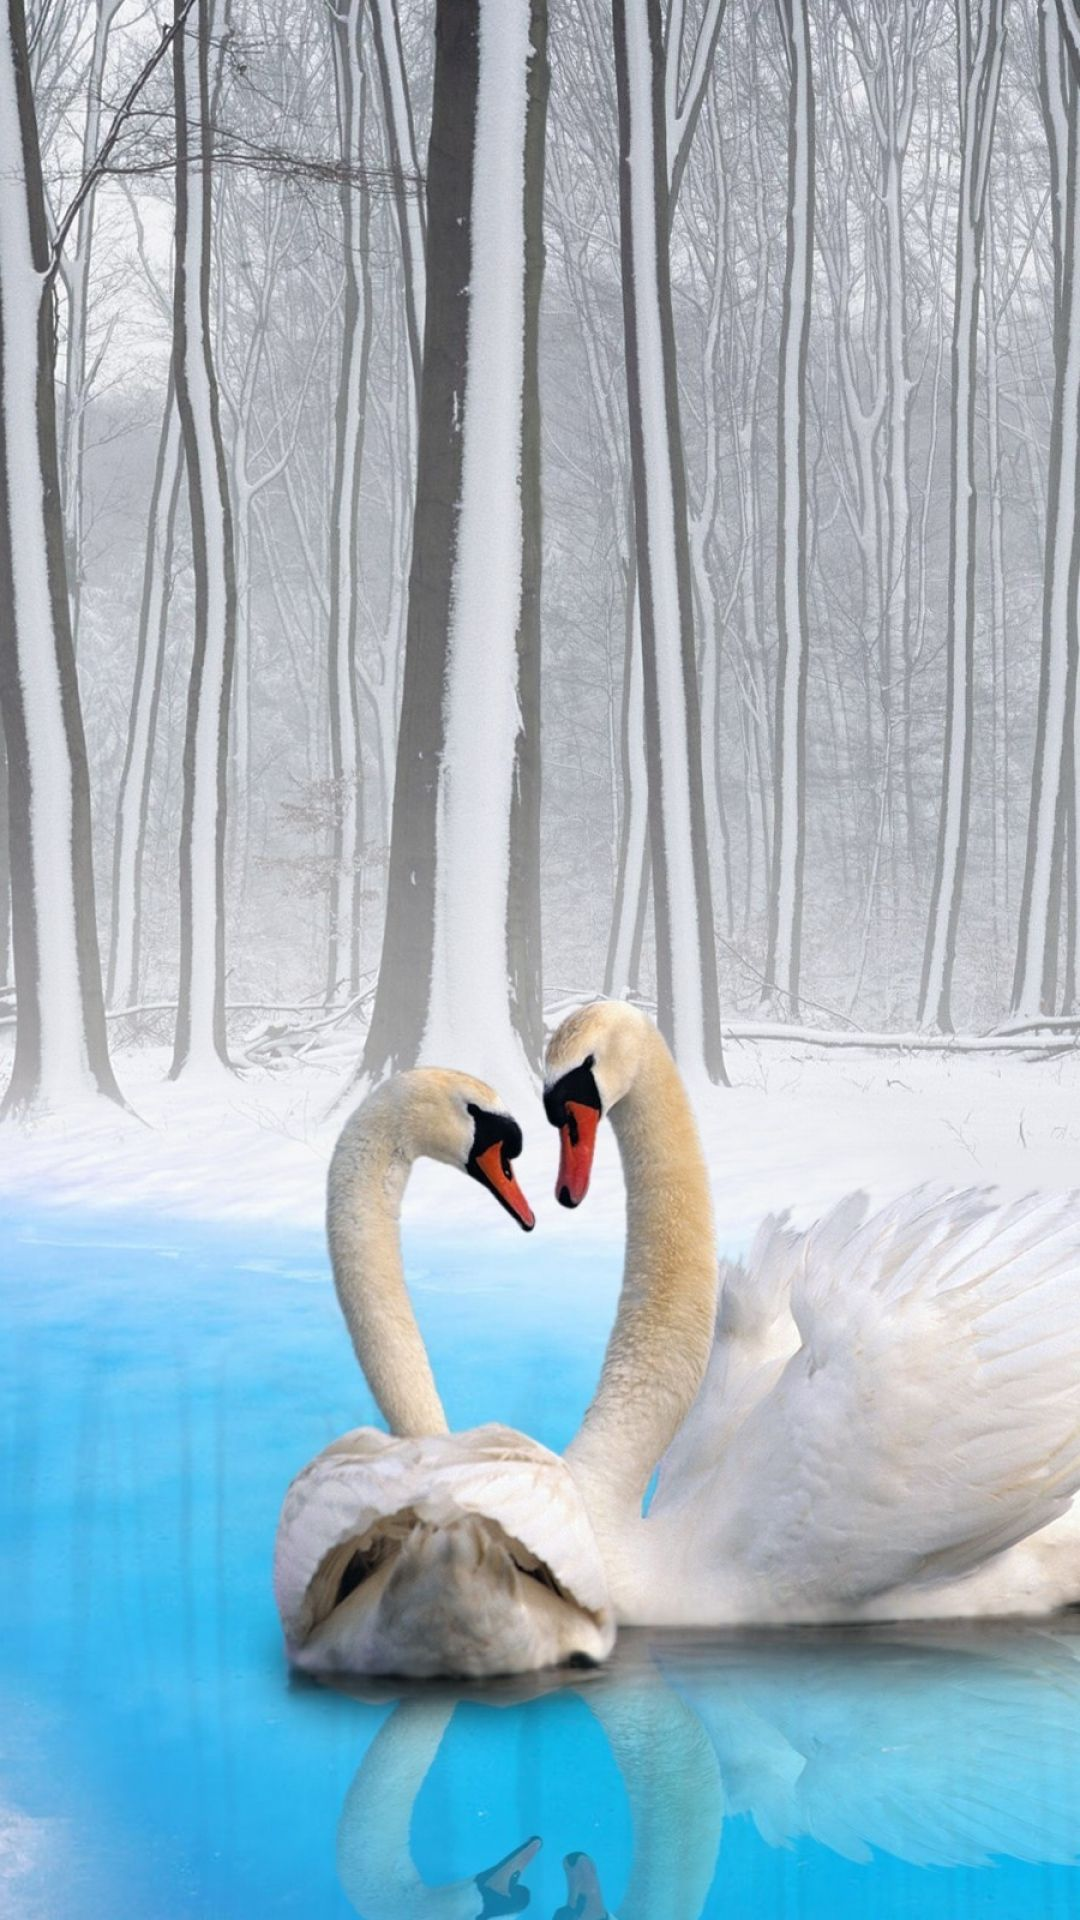 ❄️ Winter blue is magic❄️ / Winters loyal swan couple.